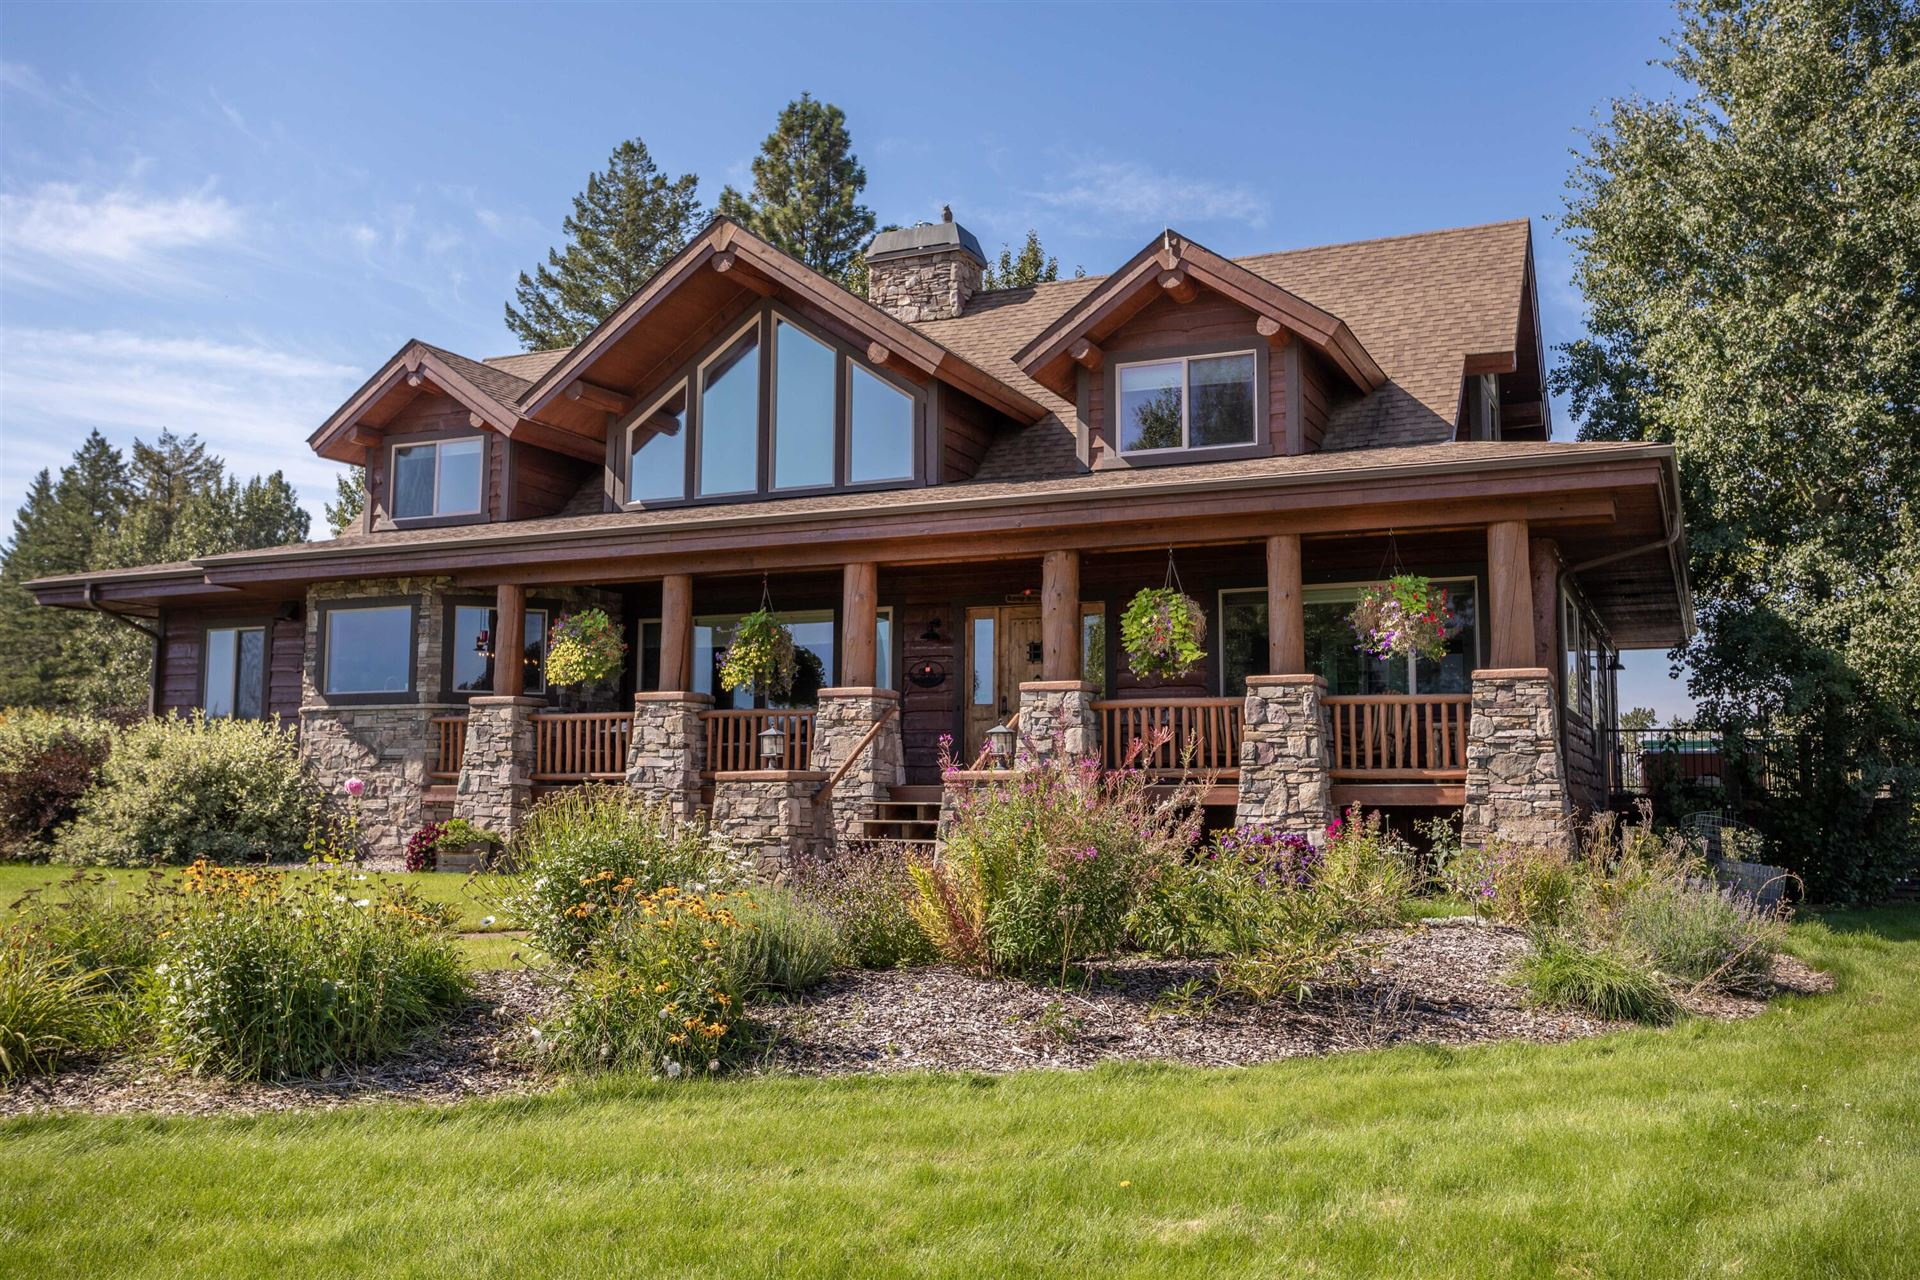 Photo for 62 & 54 Gentry Way, Columbia Falls, MT 59912 (MLS # 22114787)